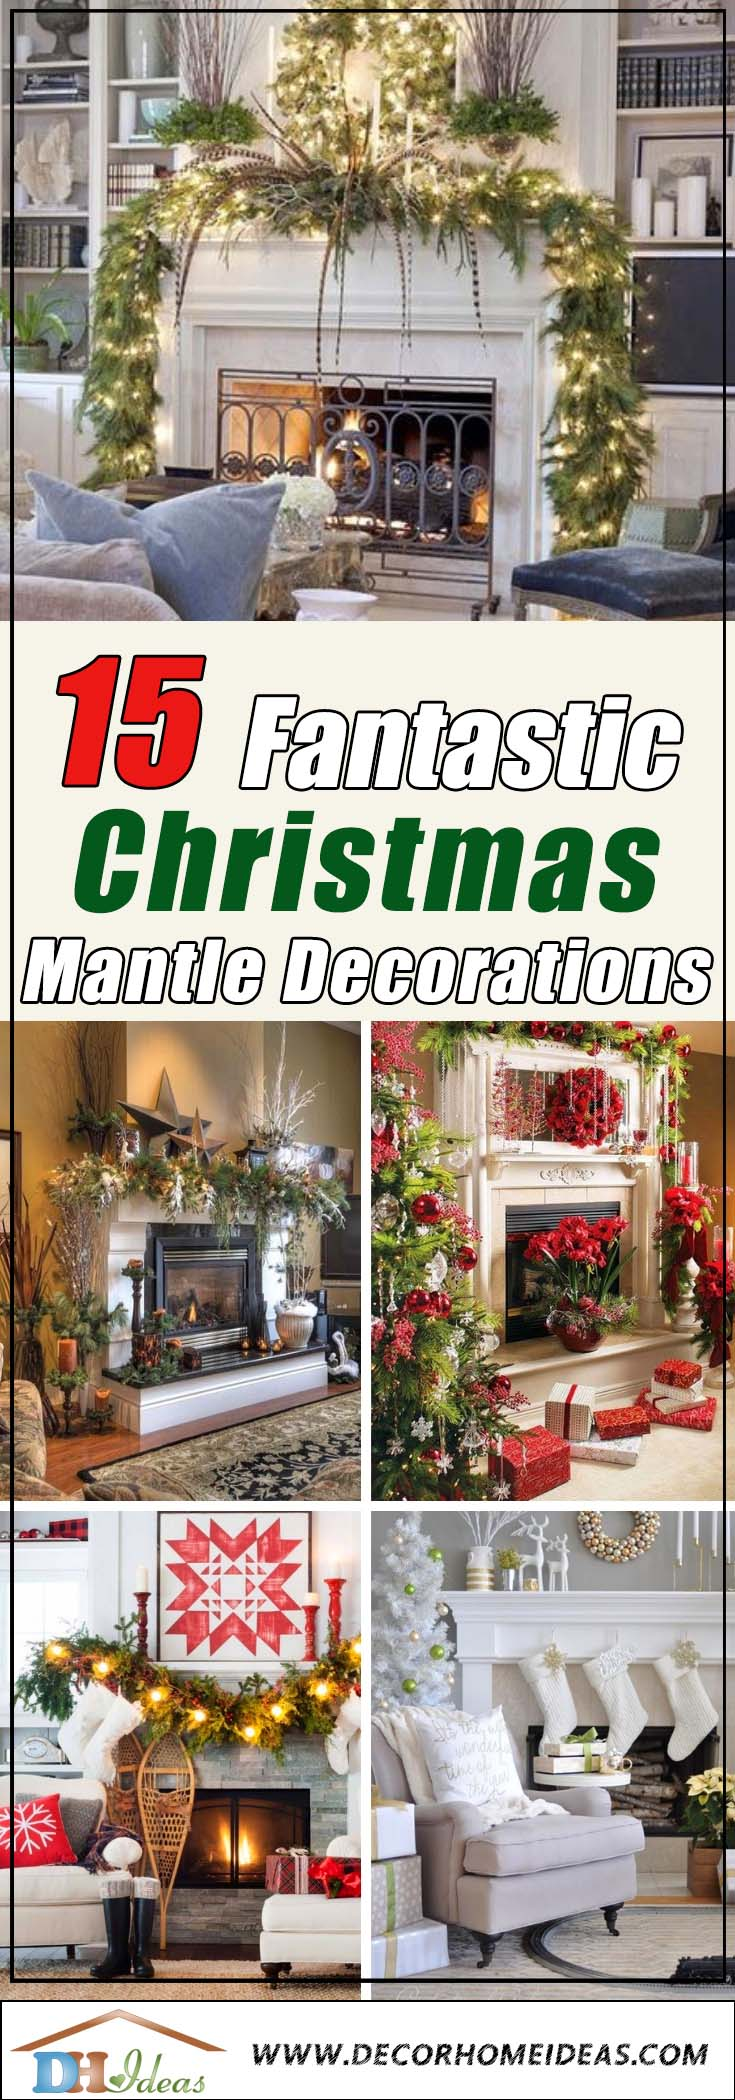 15 Ways To Add Christmas Cheer To Your Mantel | Decorate your mantel with some Christmas spirit. #xmas #x-mas #christmas #mantel #homedecor #decoratingideas #festive #decorhomeideas